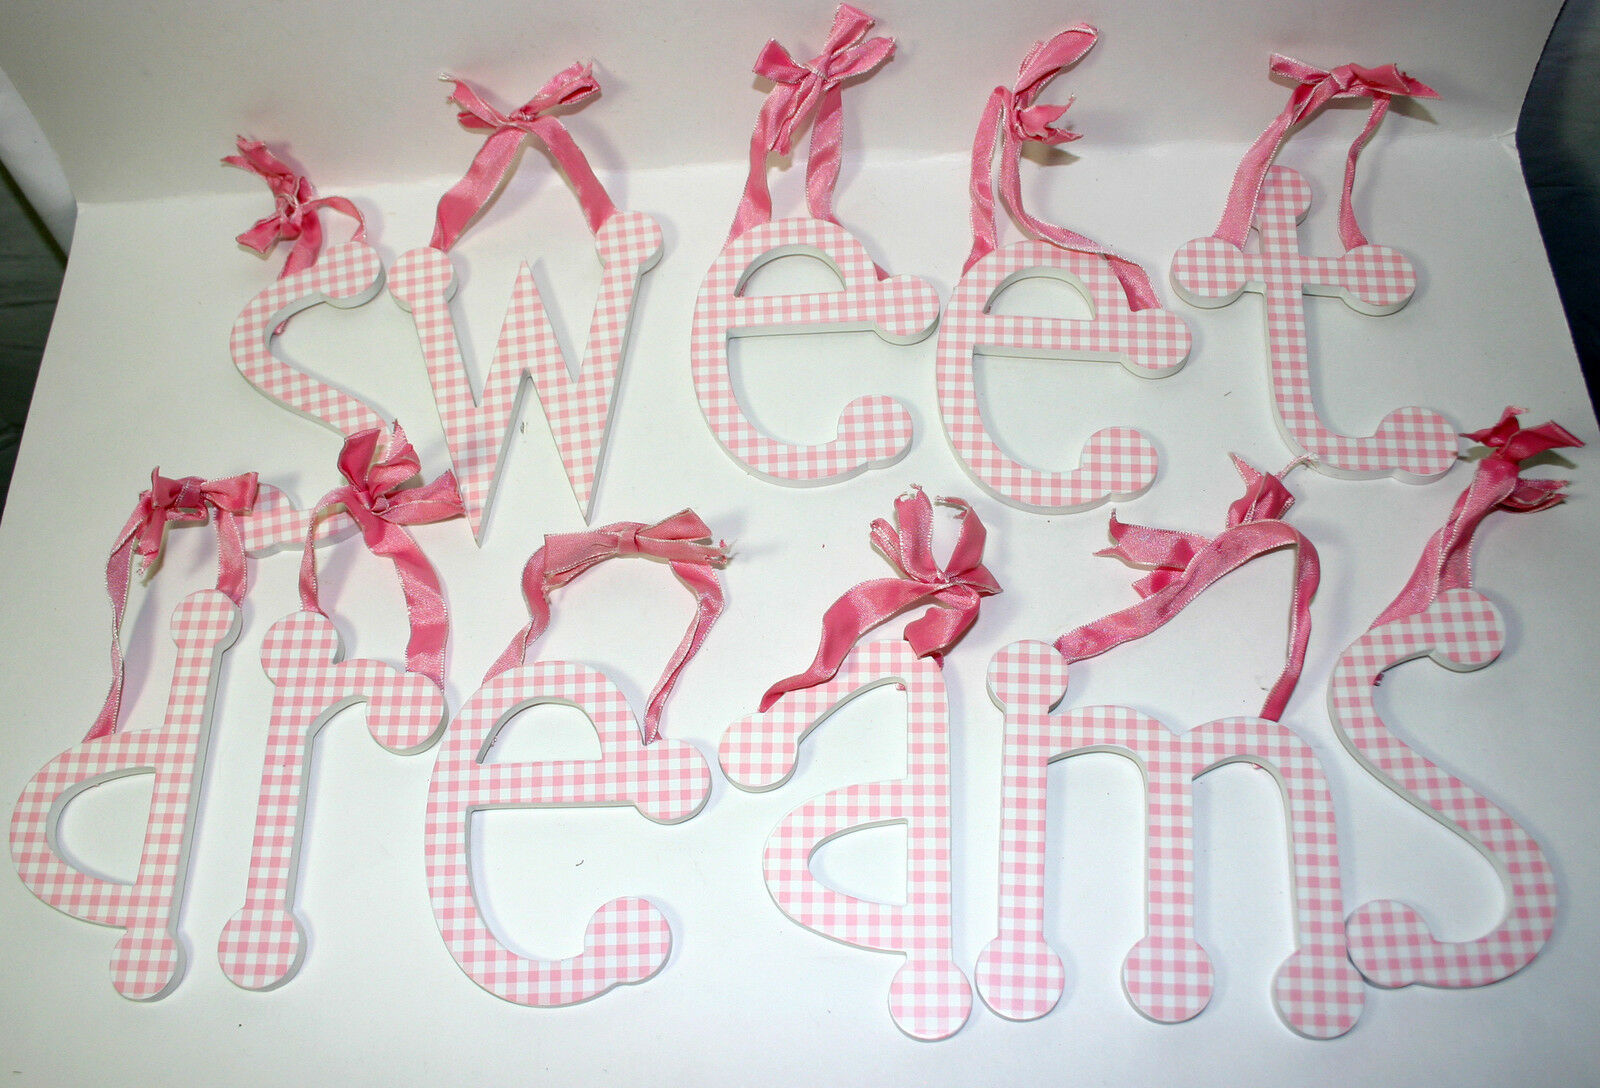 sweet dreams pink gingham individual ribbon hanging wall letters